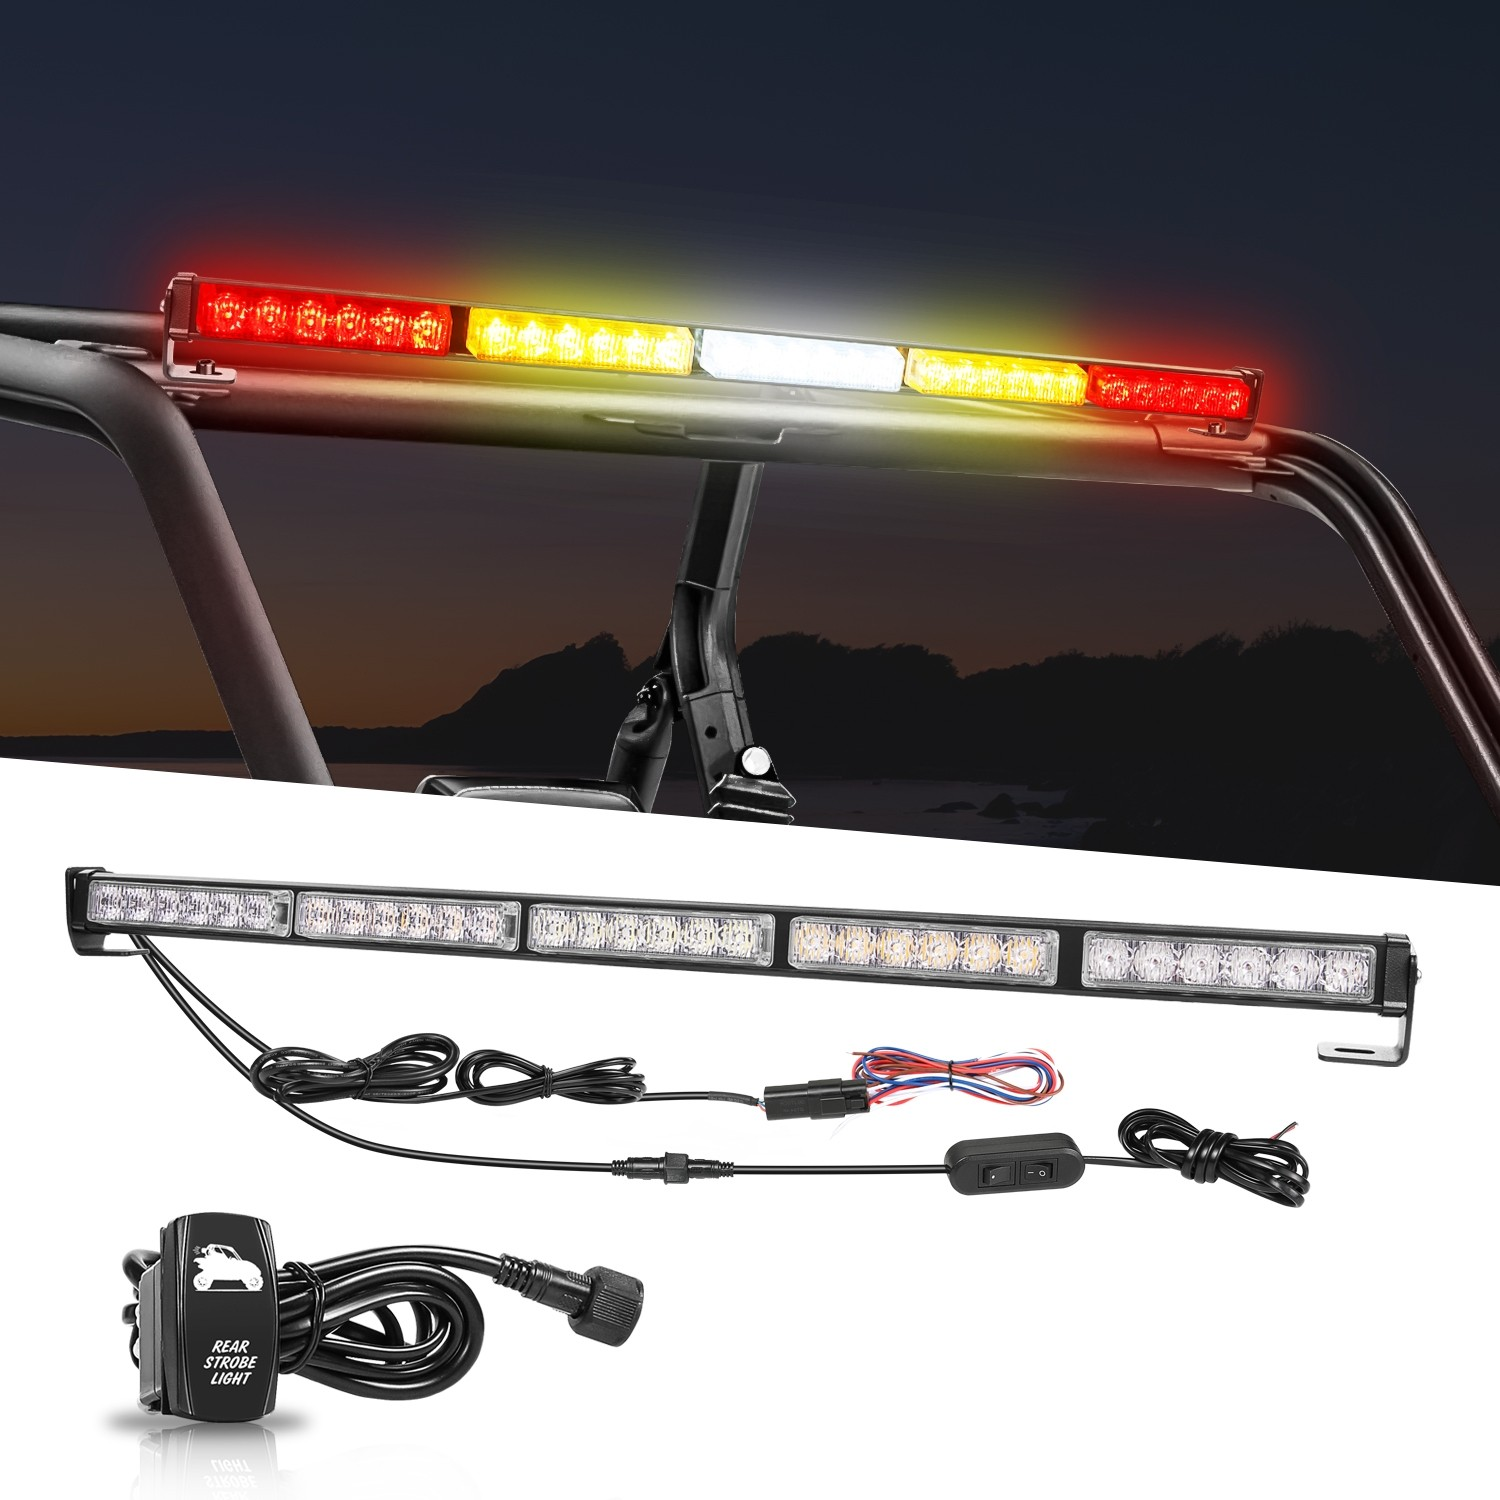 LED Chase Light Bar, OFFROADOWN 30'' Offroad Rear LED Chase Strobe Light Bar with Reverse Brake Turn Signal Light for UTV RZR Polaris Yamaha 4x4 Truck Dune Buggy ATV Can-Am Off Road